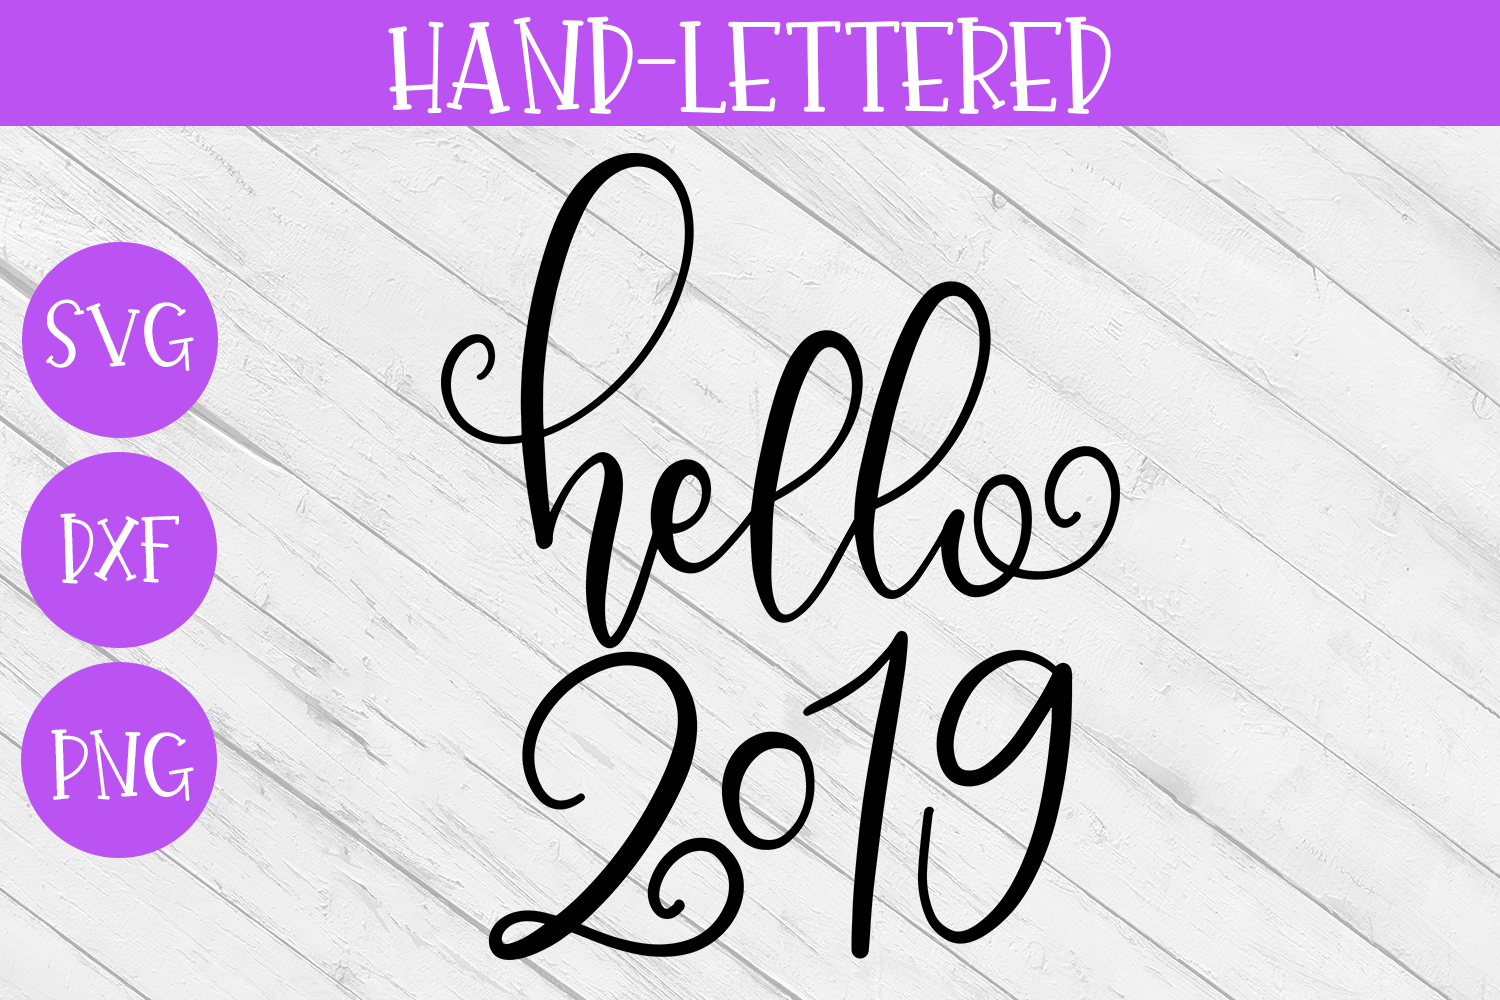 New Year SVG - Hello 2019 Hand-Lettered Cut File example image 2